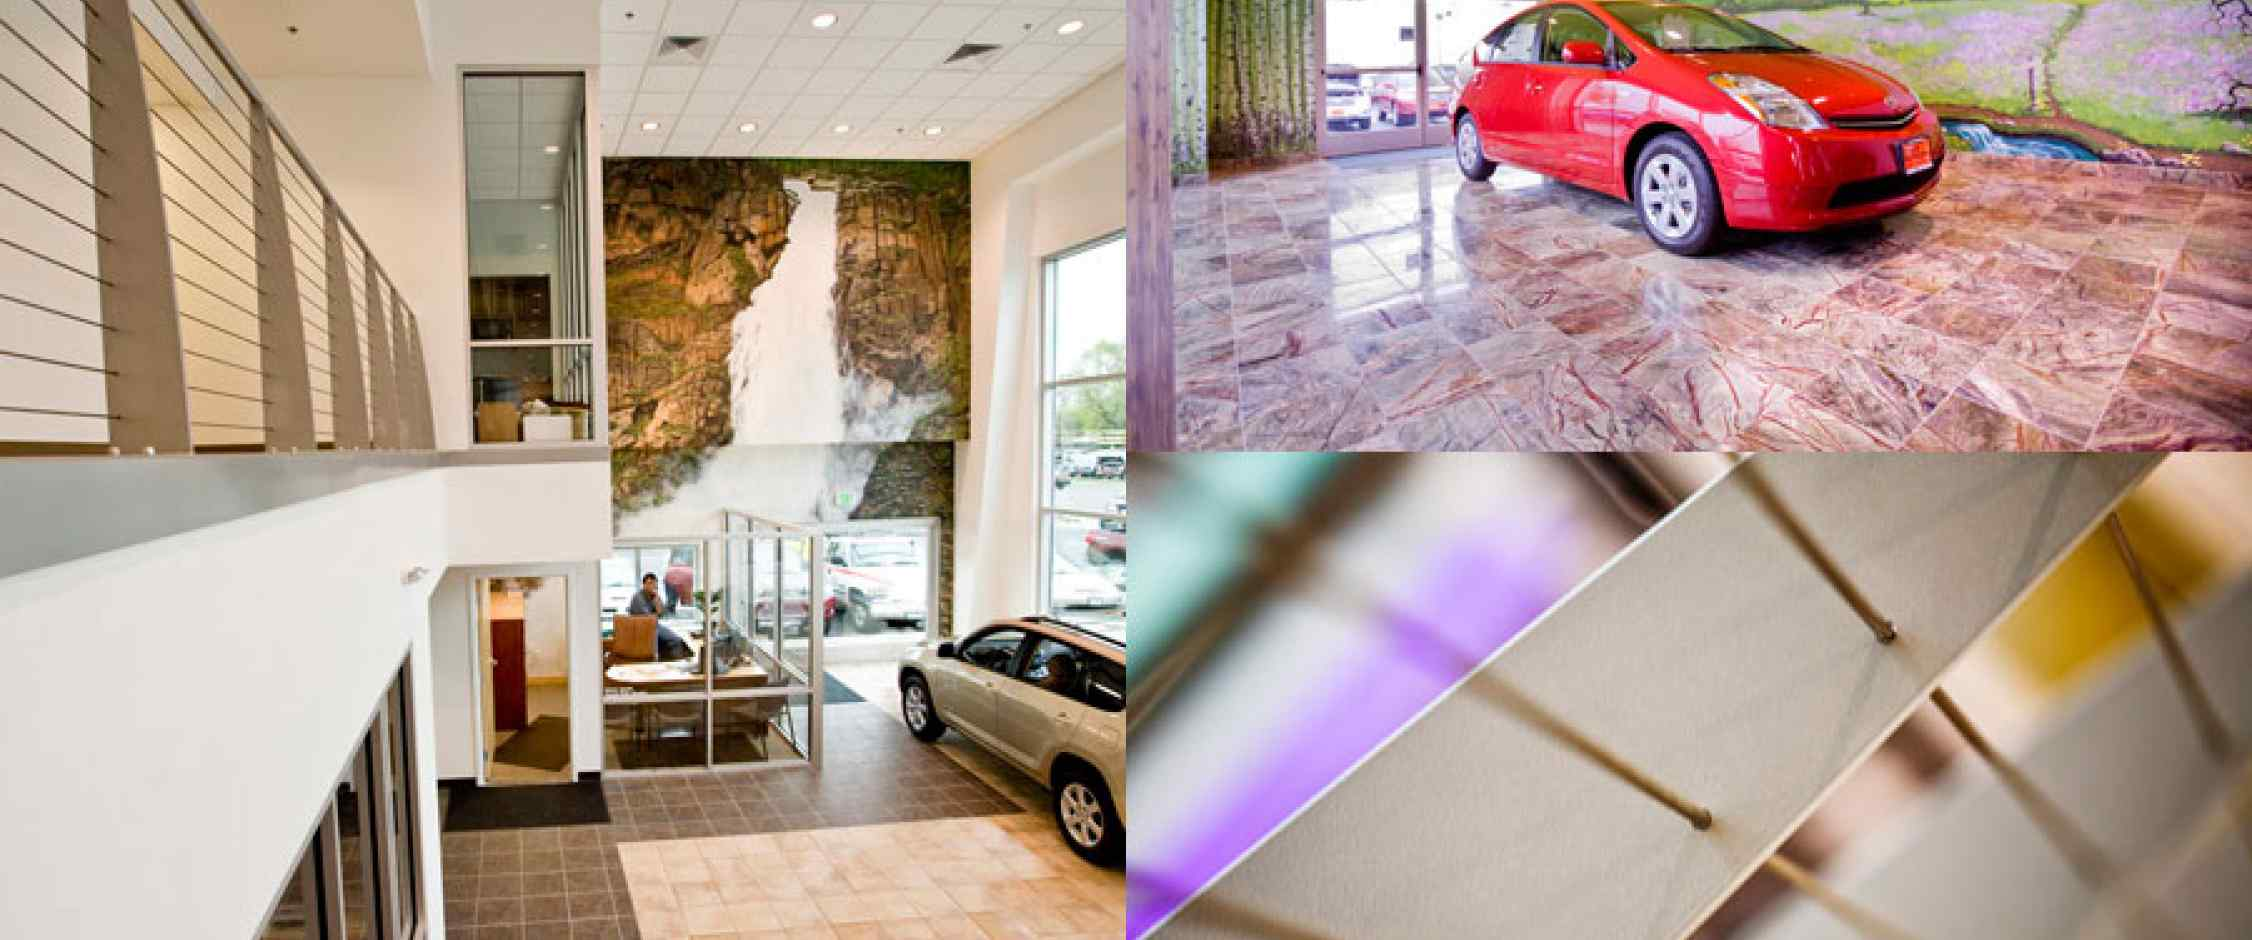 Patterson Toyota - Collage 1